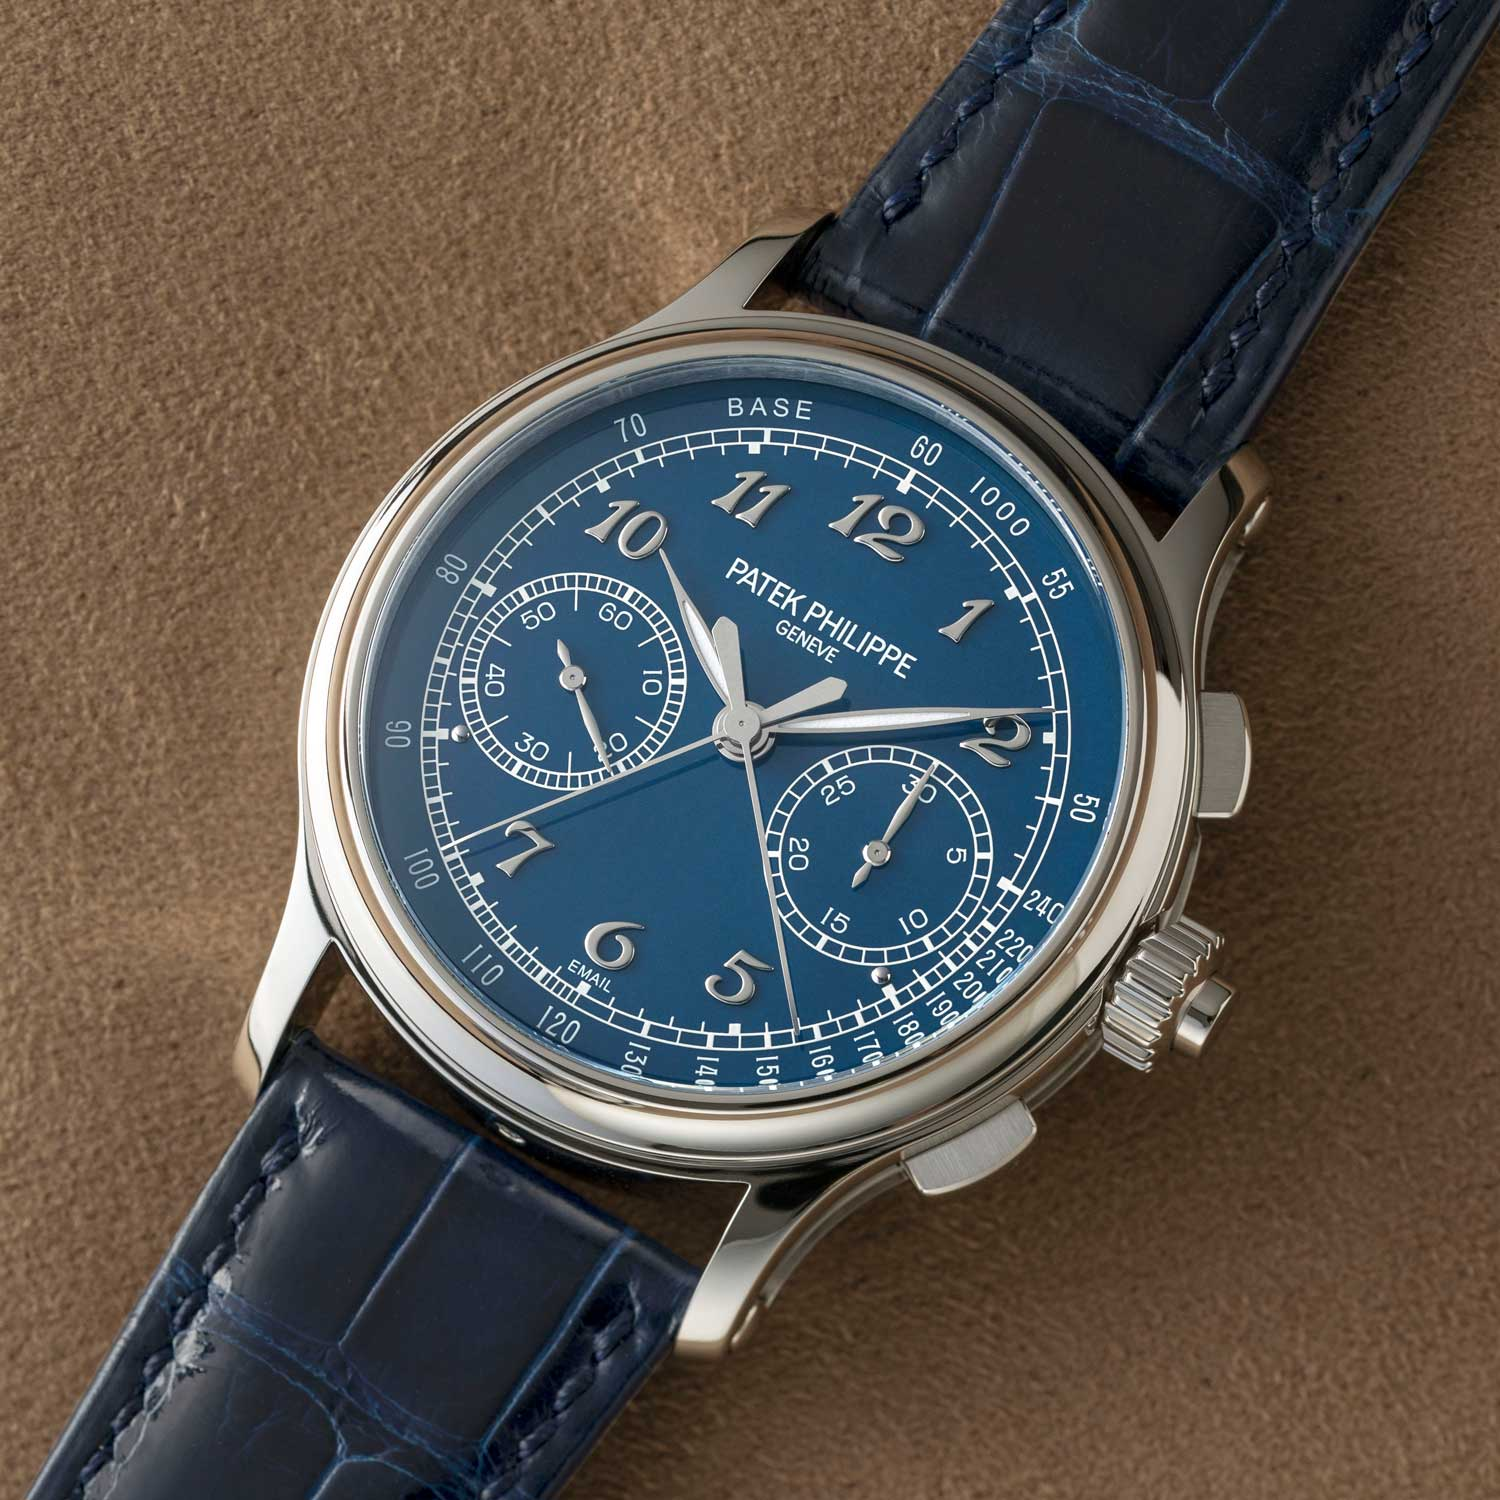 The Patek Philippe Ref. 5370P-011 Split Seconds Chronograph was launched in 2020 (©Revolution)